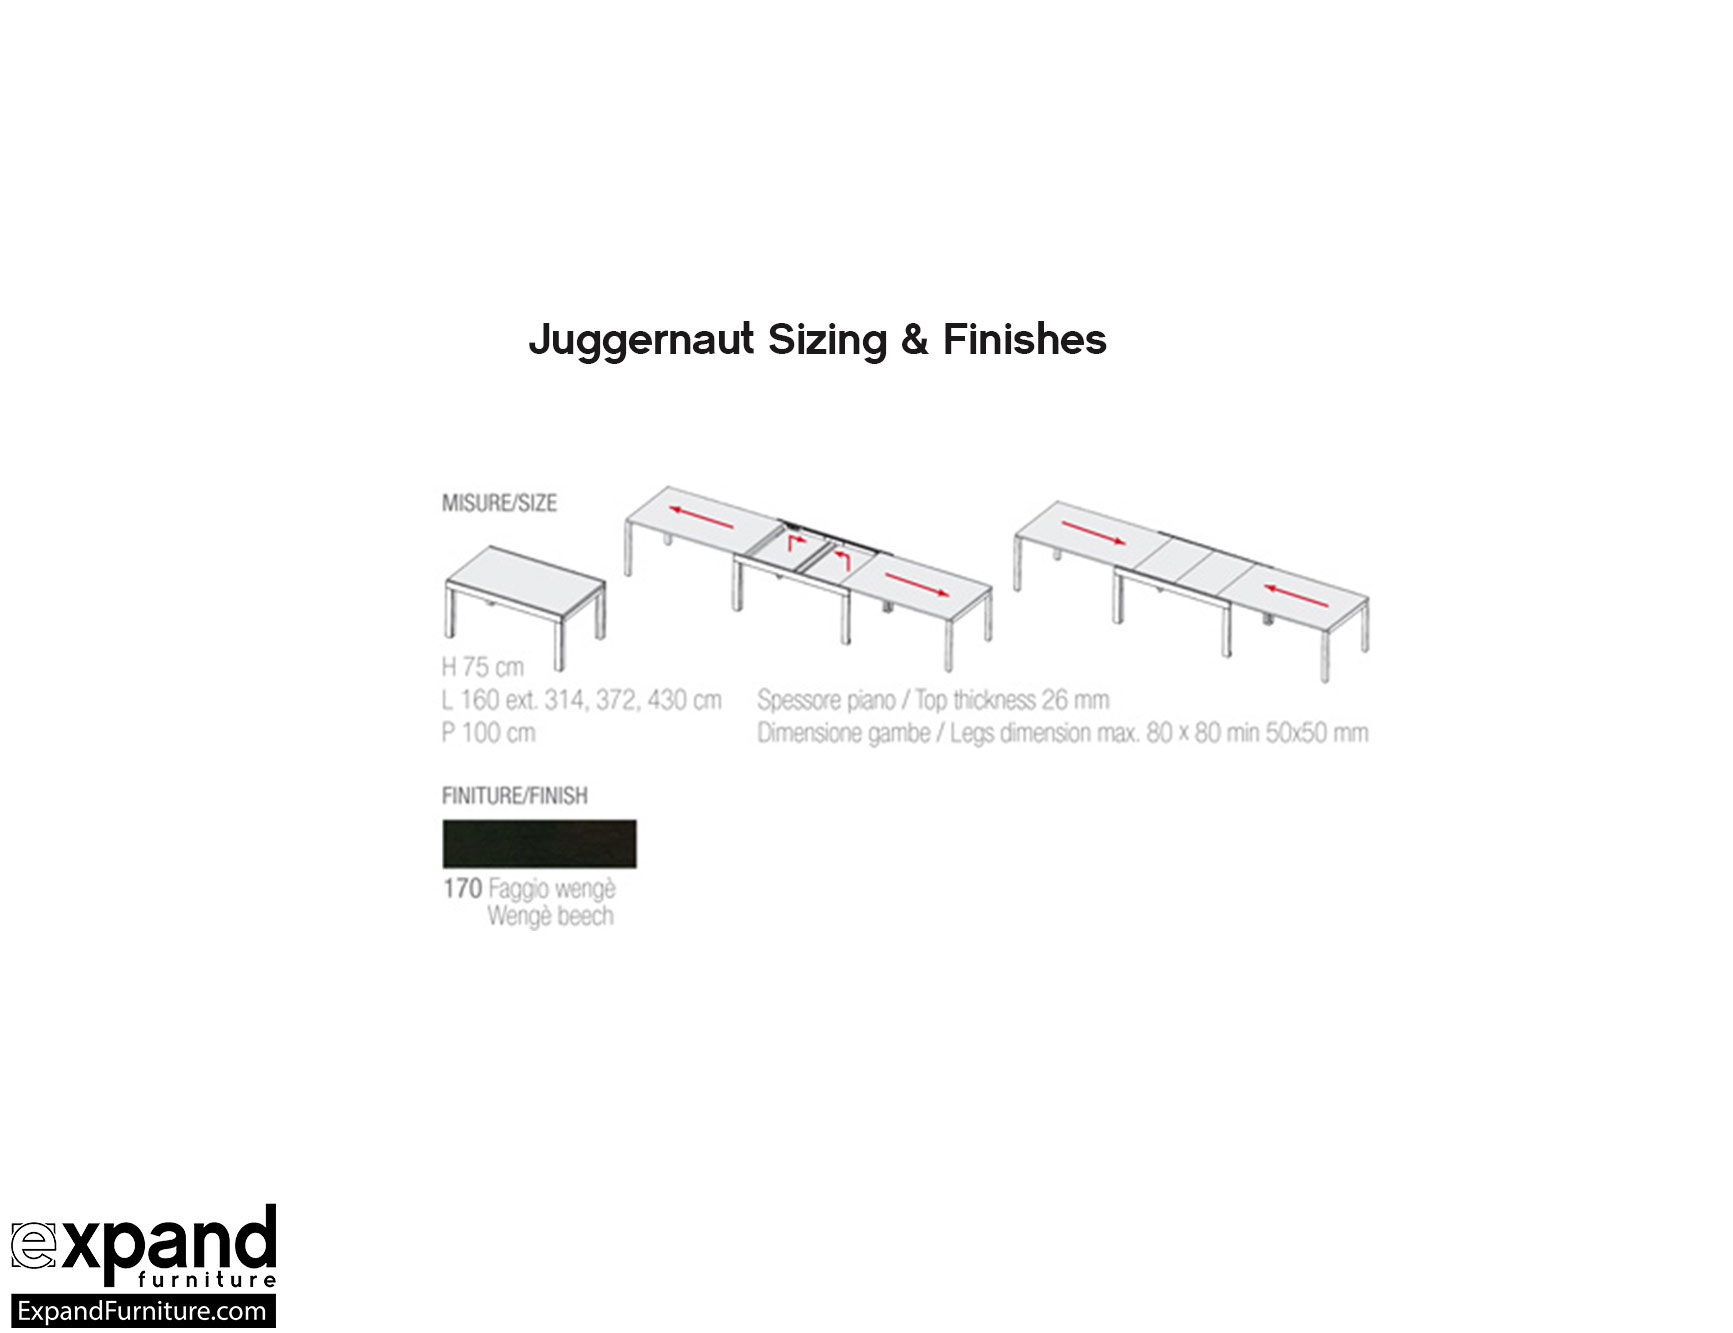 Juggernaut Massive Extendable Table Seats 22 Expand Furniture